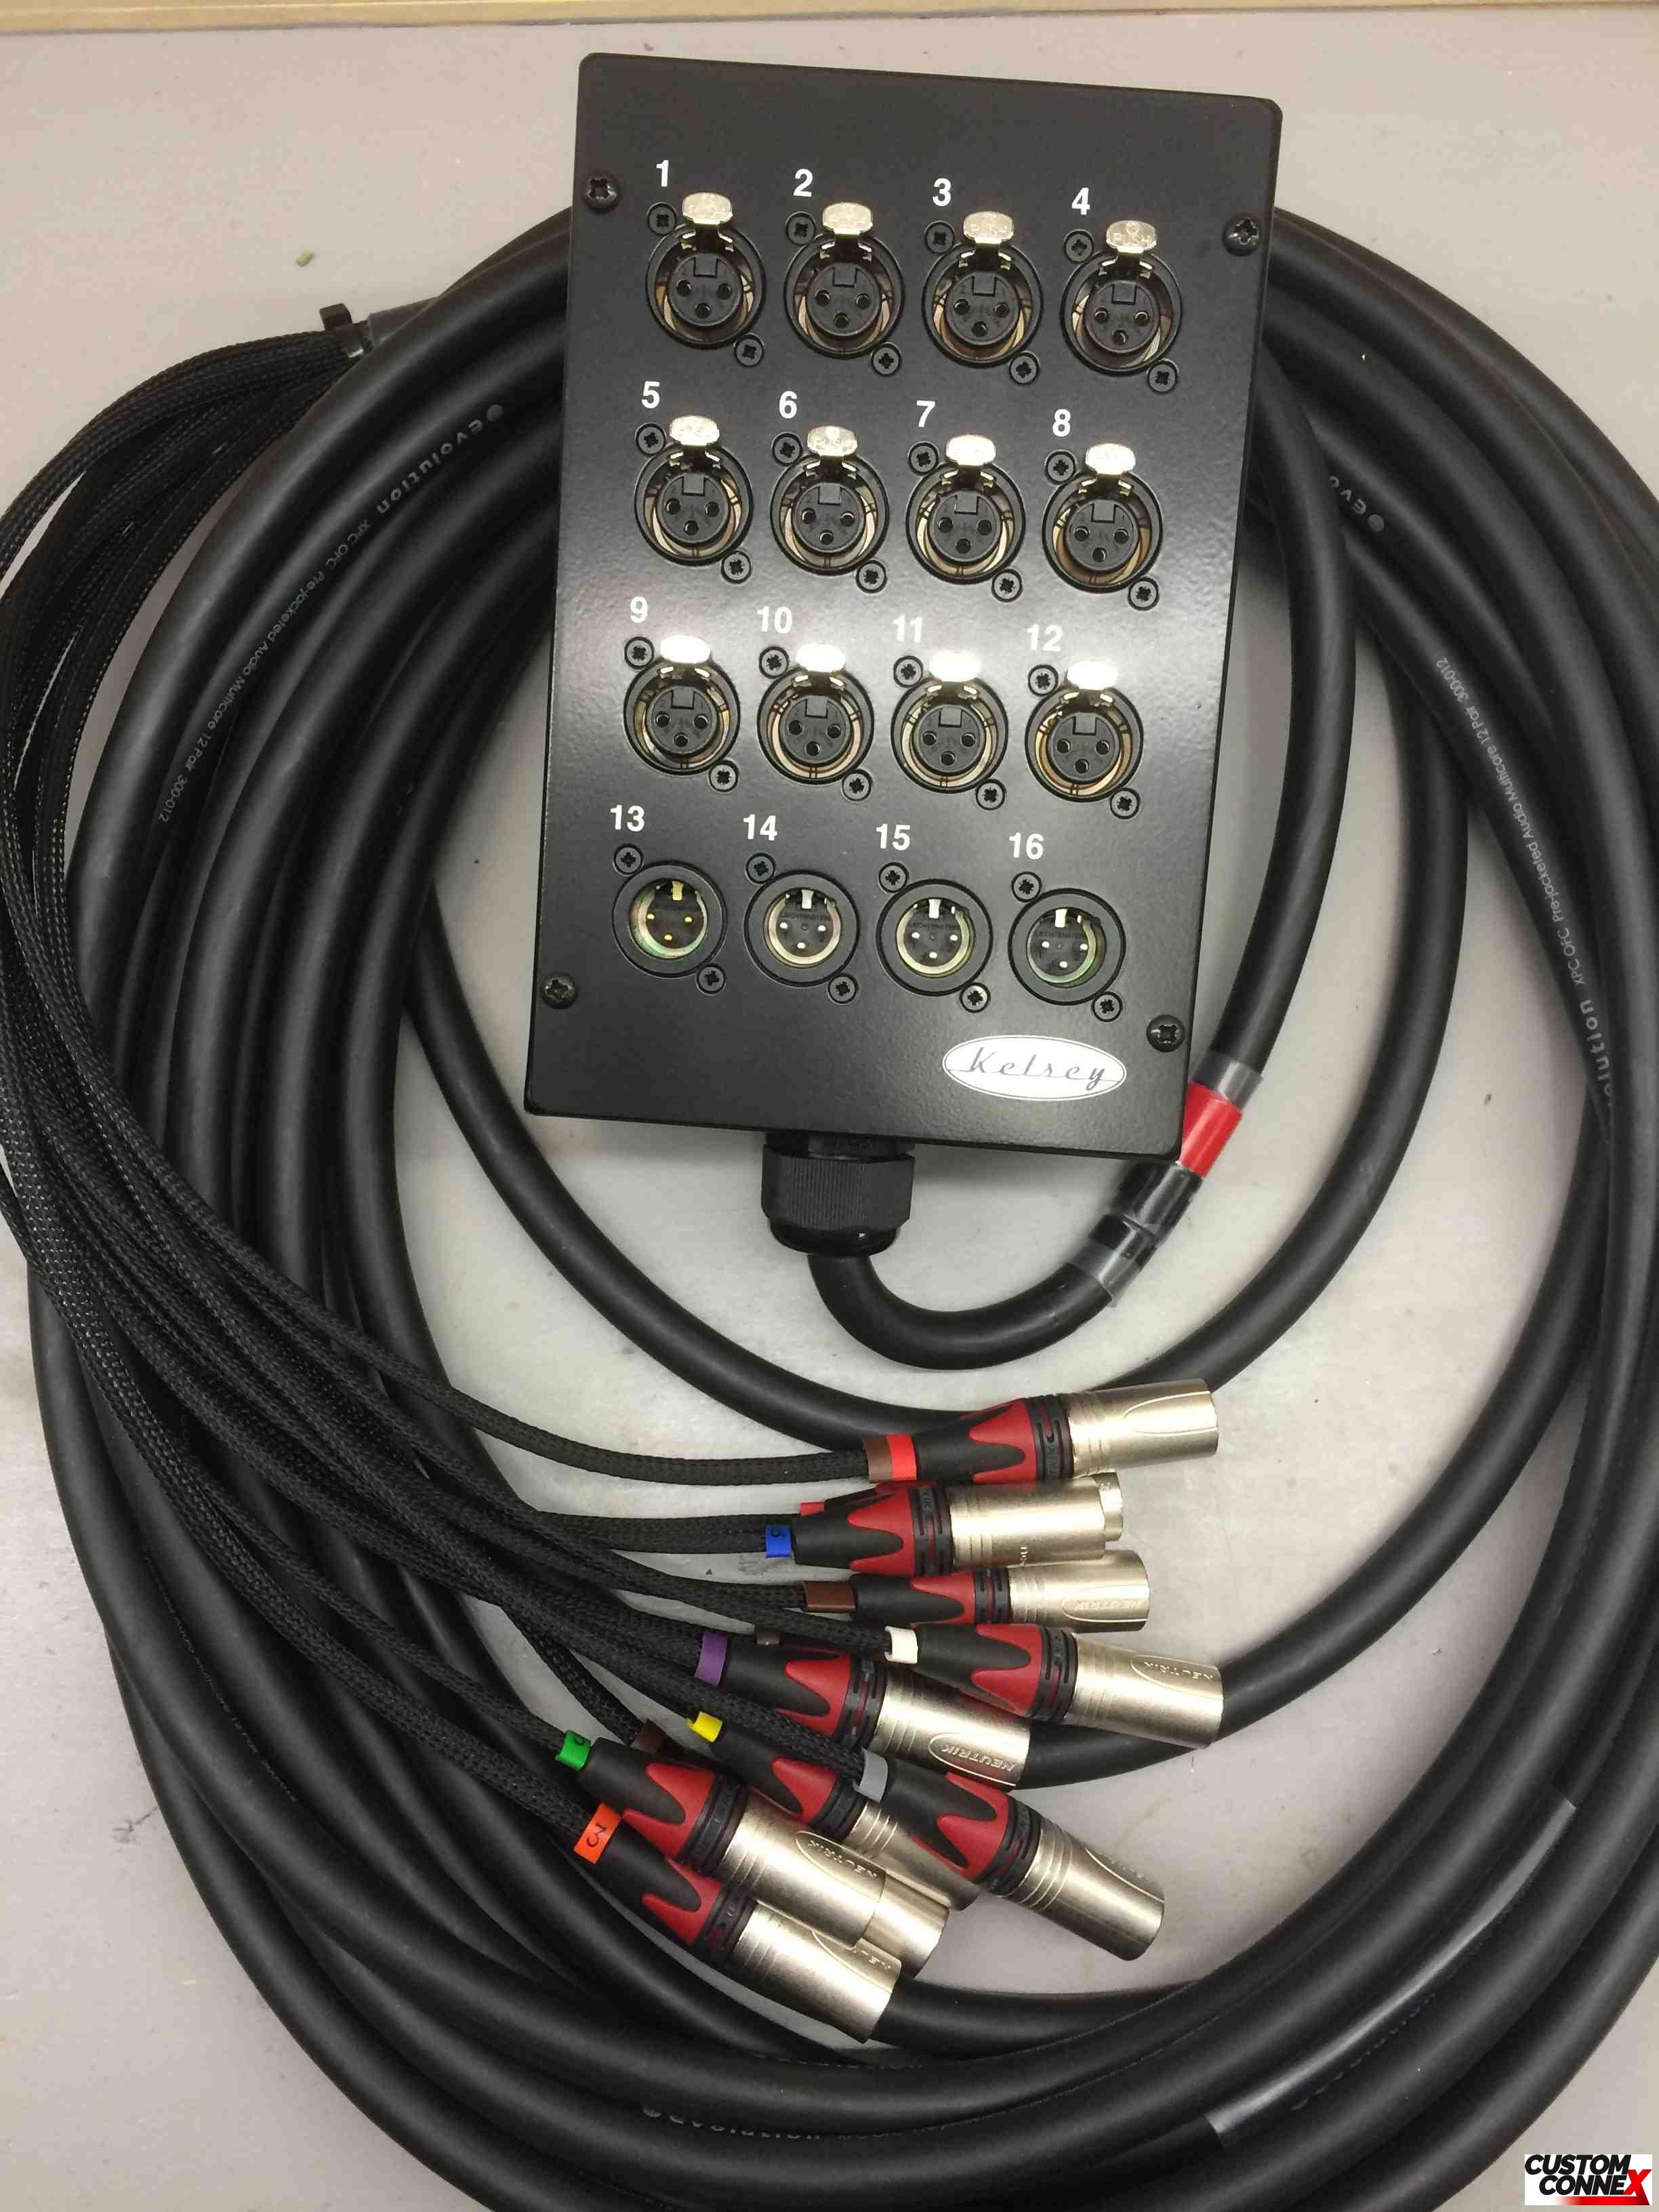 16 Channel Stage Box - Two Tails